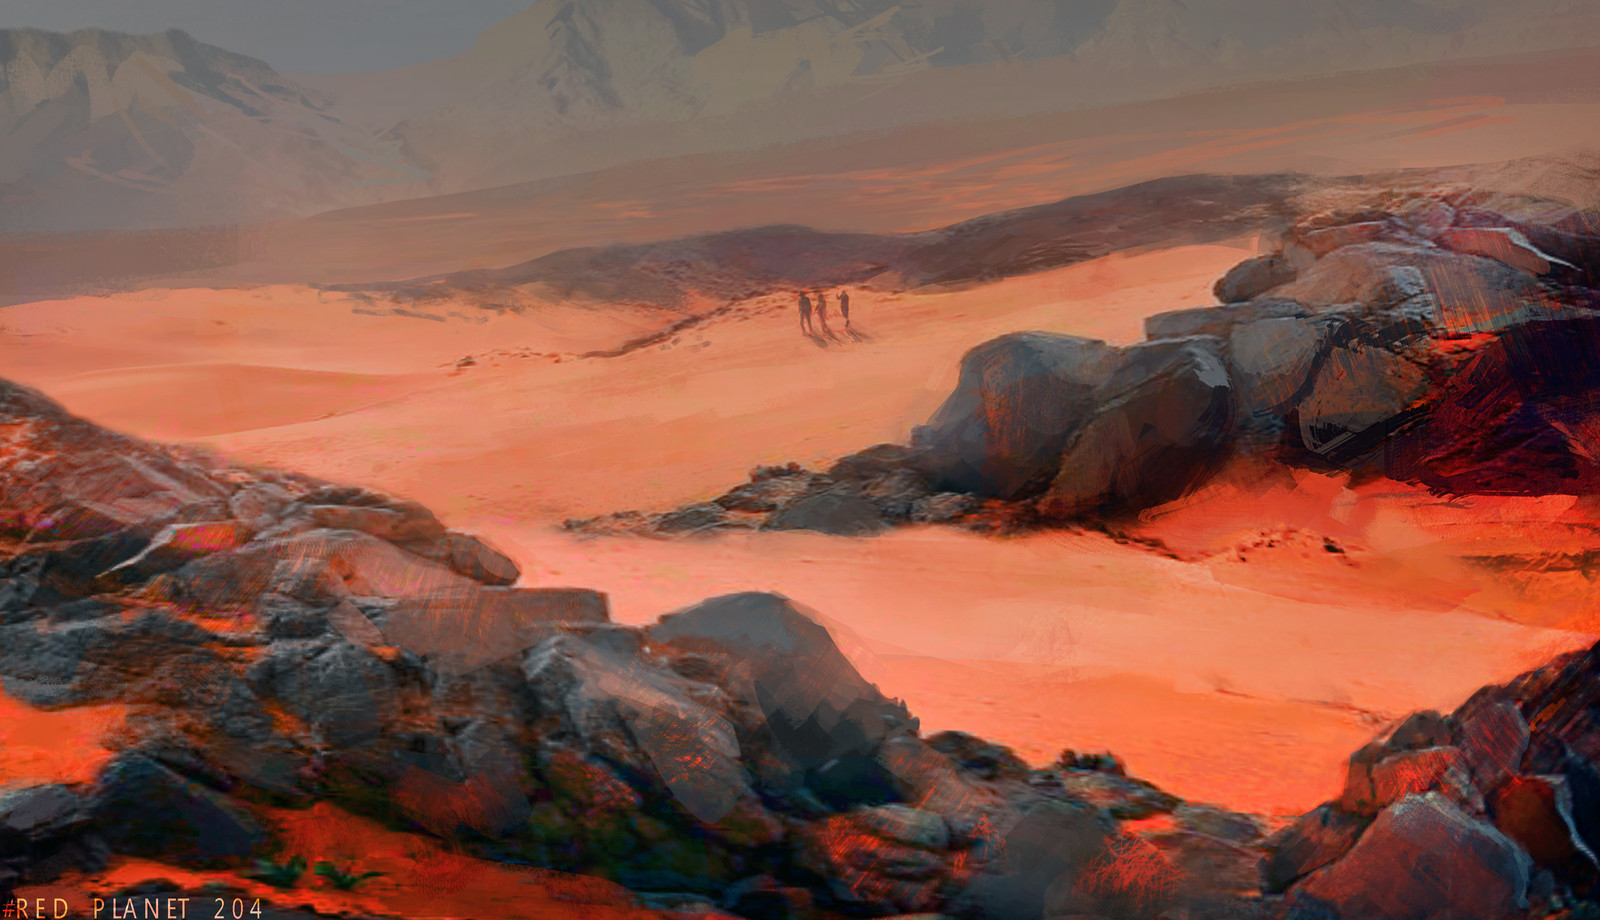 Red planet 204